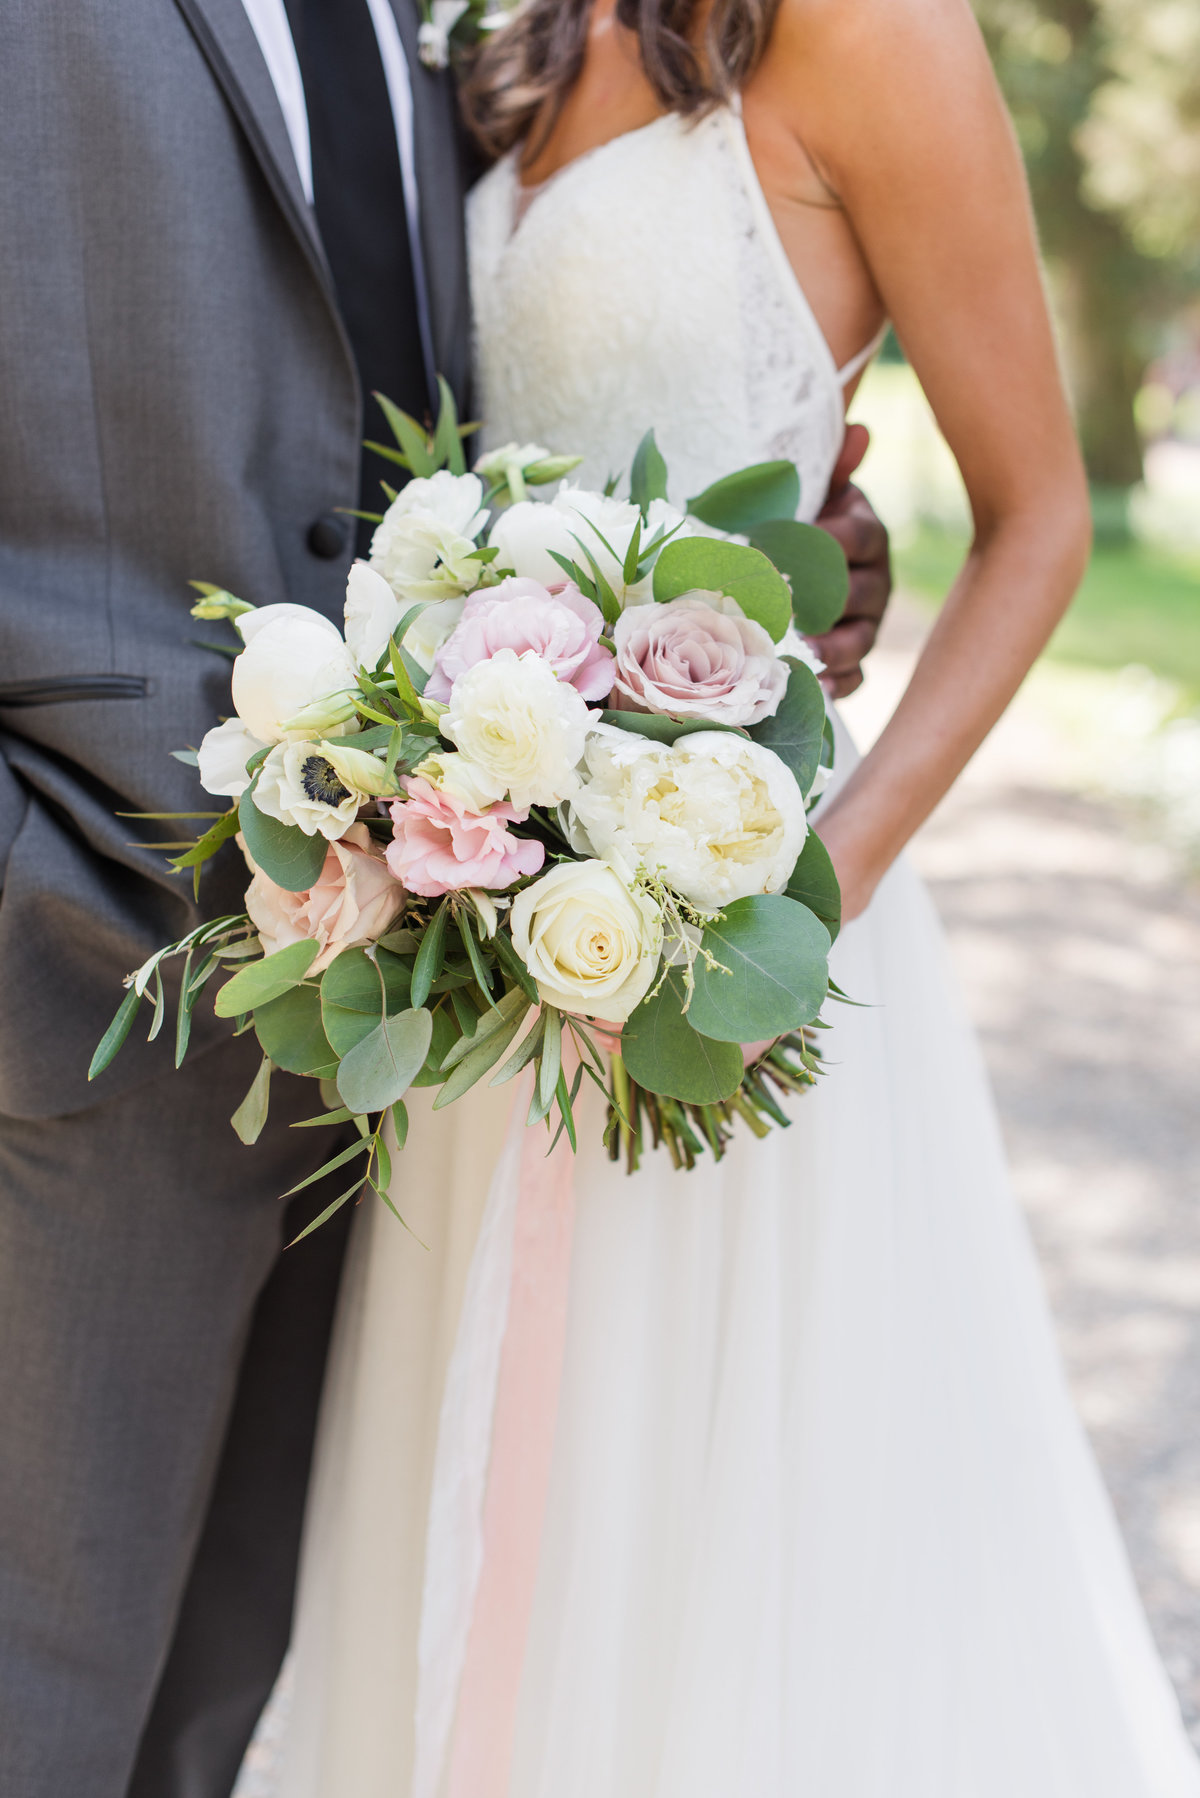 Detail of bouquet with garden roses